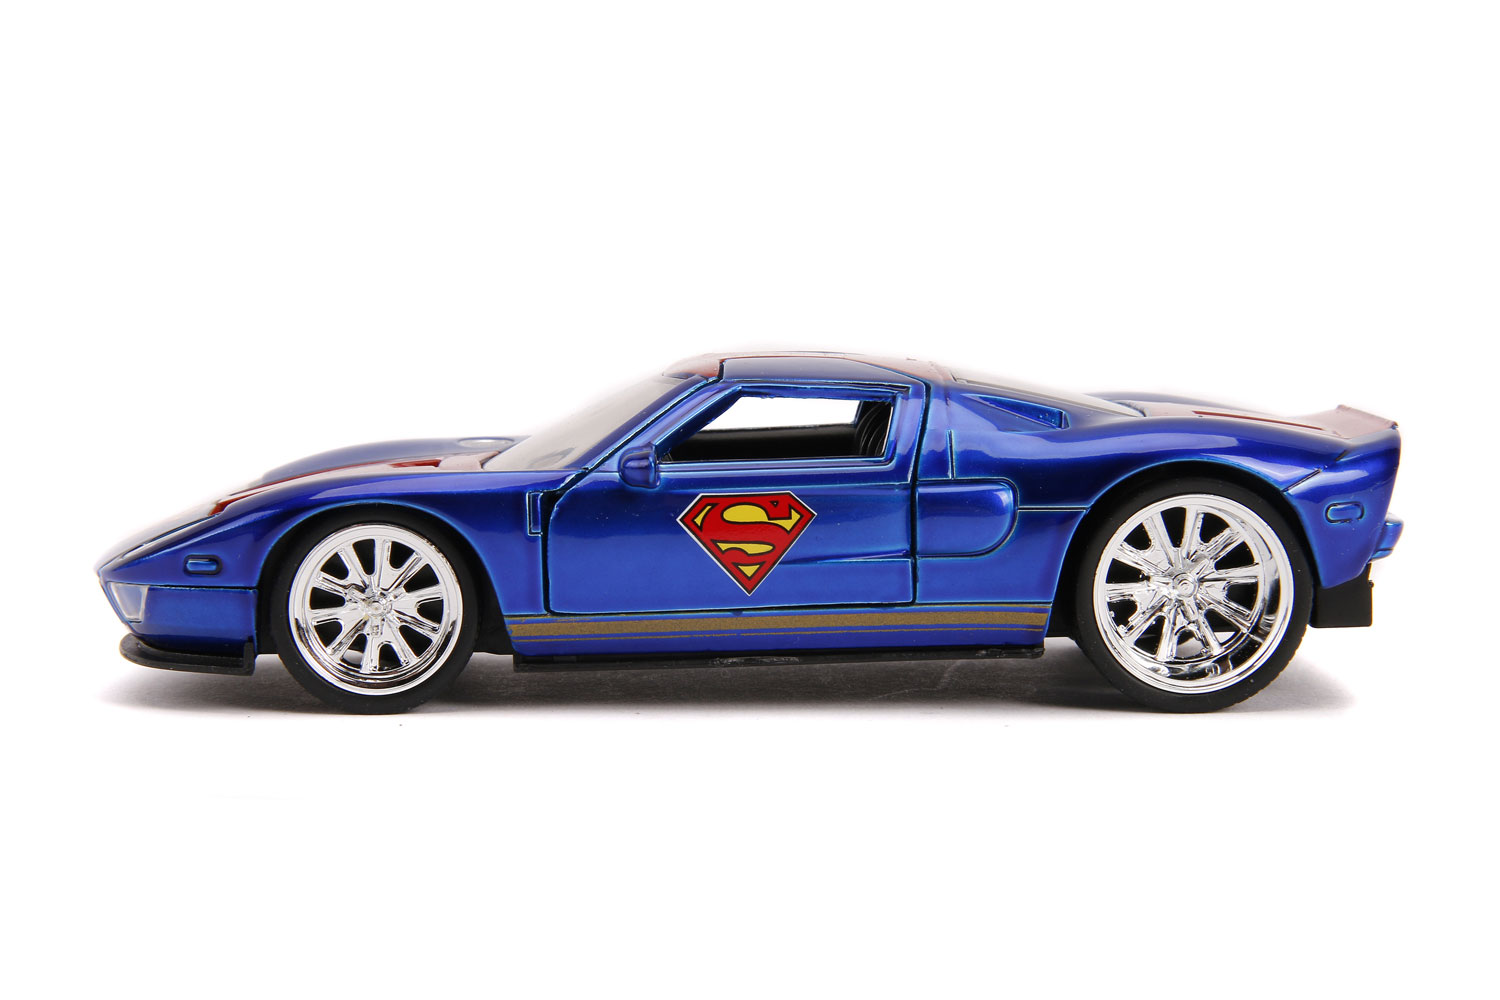 DC Vehicle: Superman 2005 Ford GT  (1/32 scale) - Jada Toys, Inc